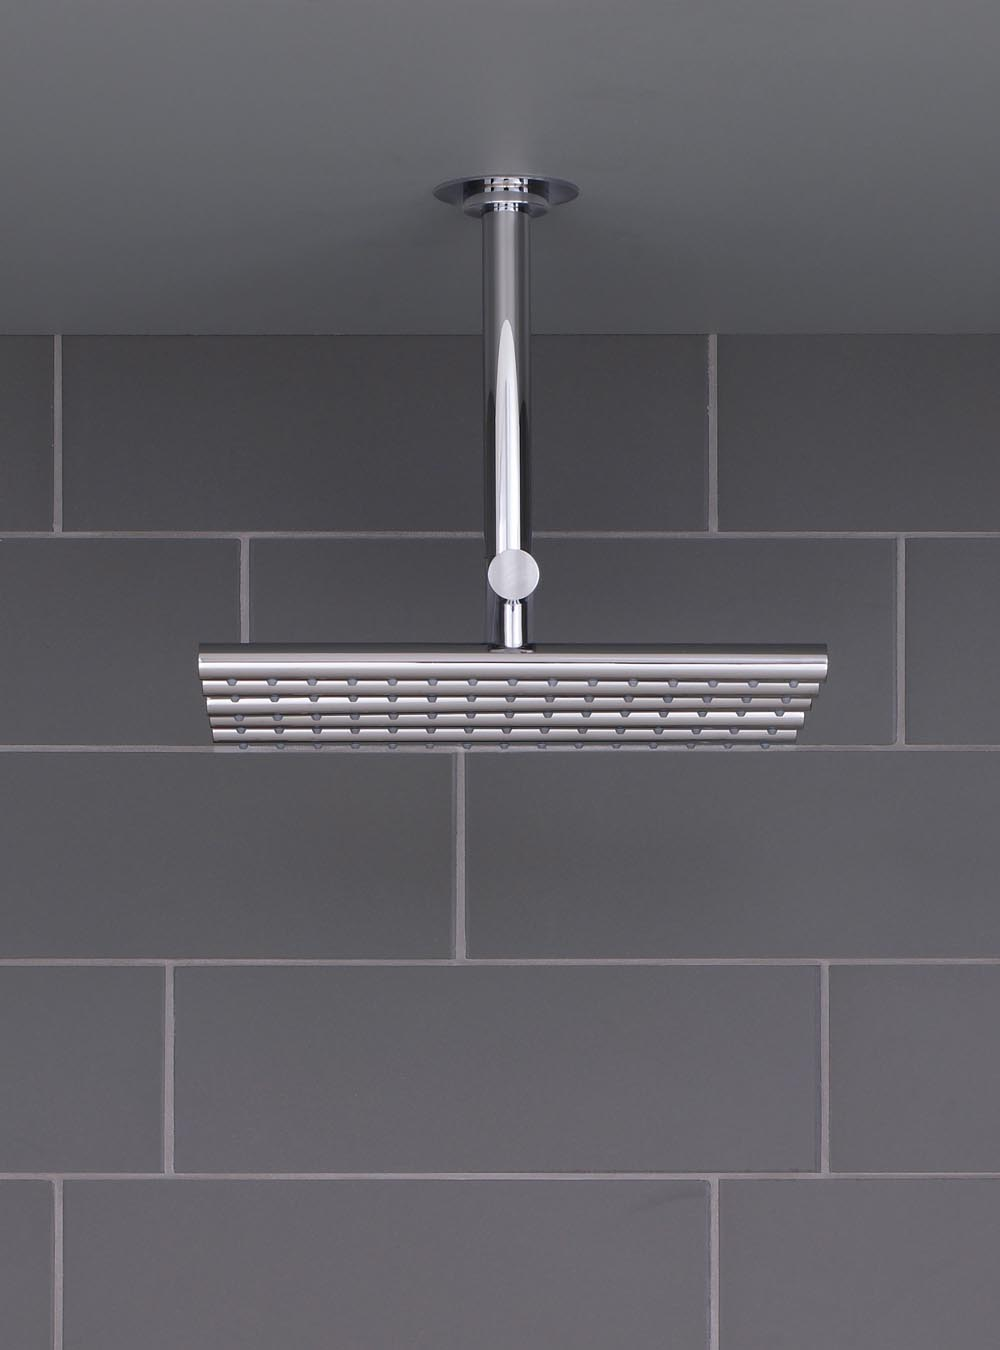 050A: Head shower, ceiling mounted. 60 mm cover flange included.